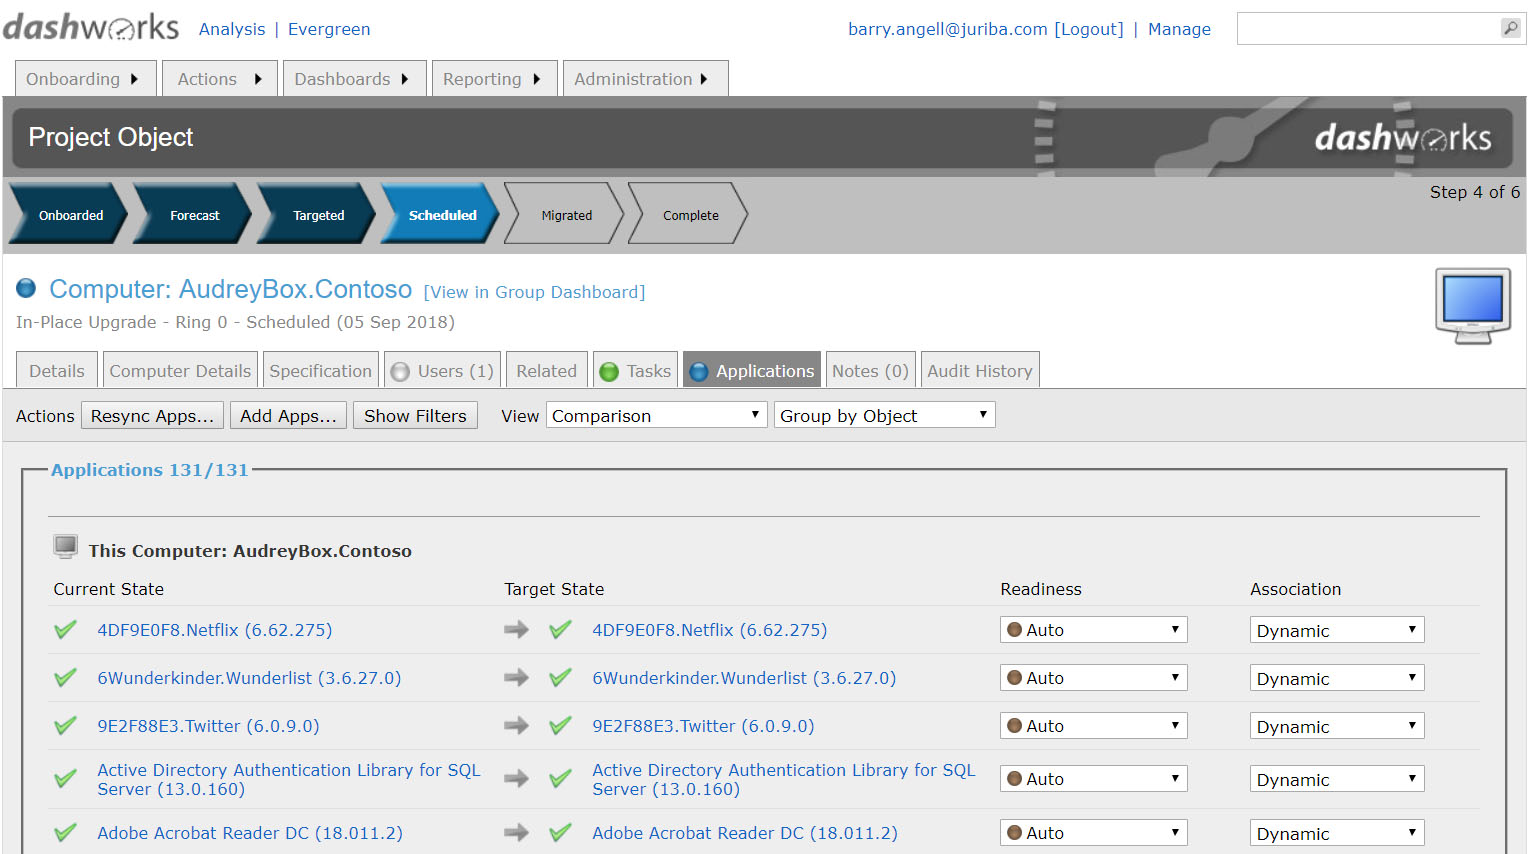 Dashworks - Windows Analytics Upgrade Readiness Connector - Application Project Readiness